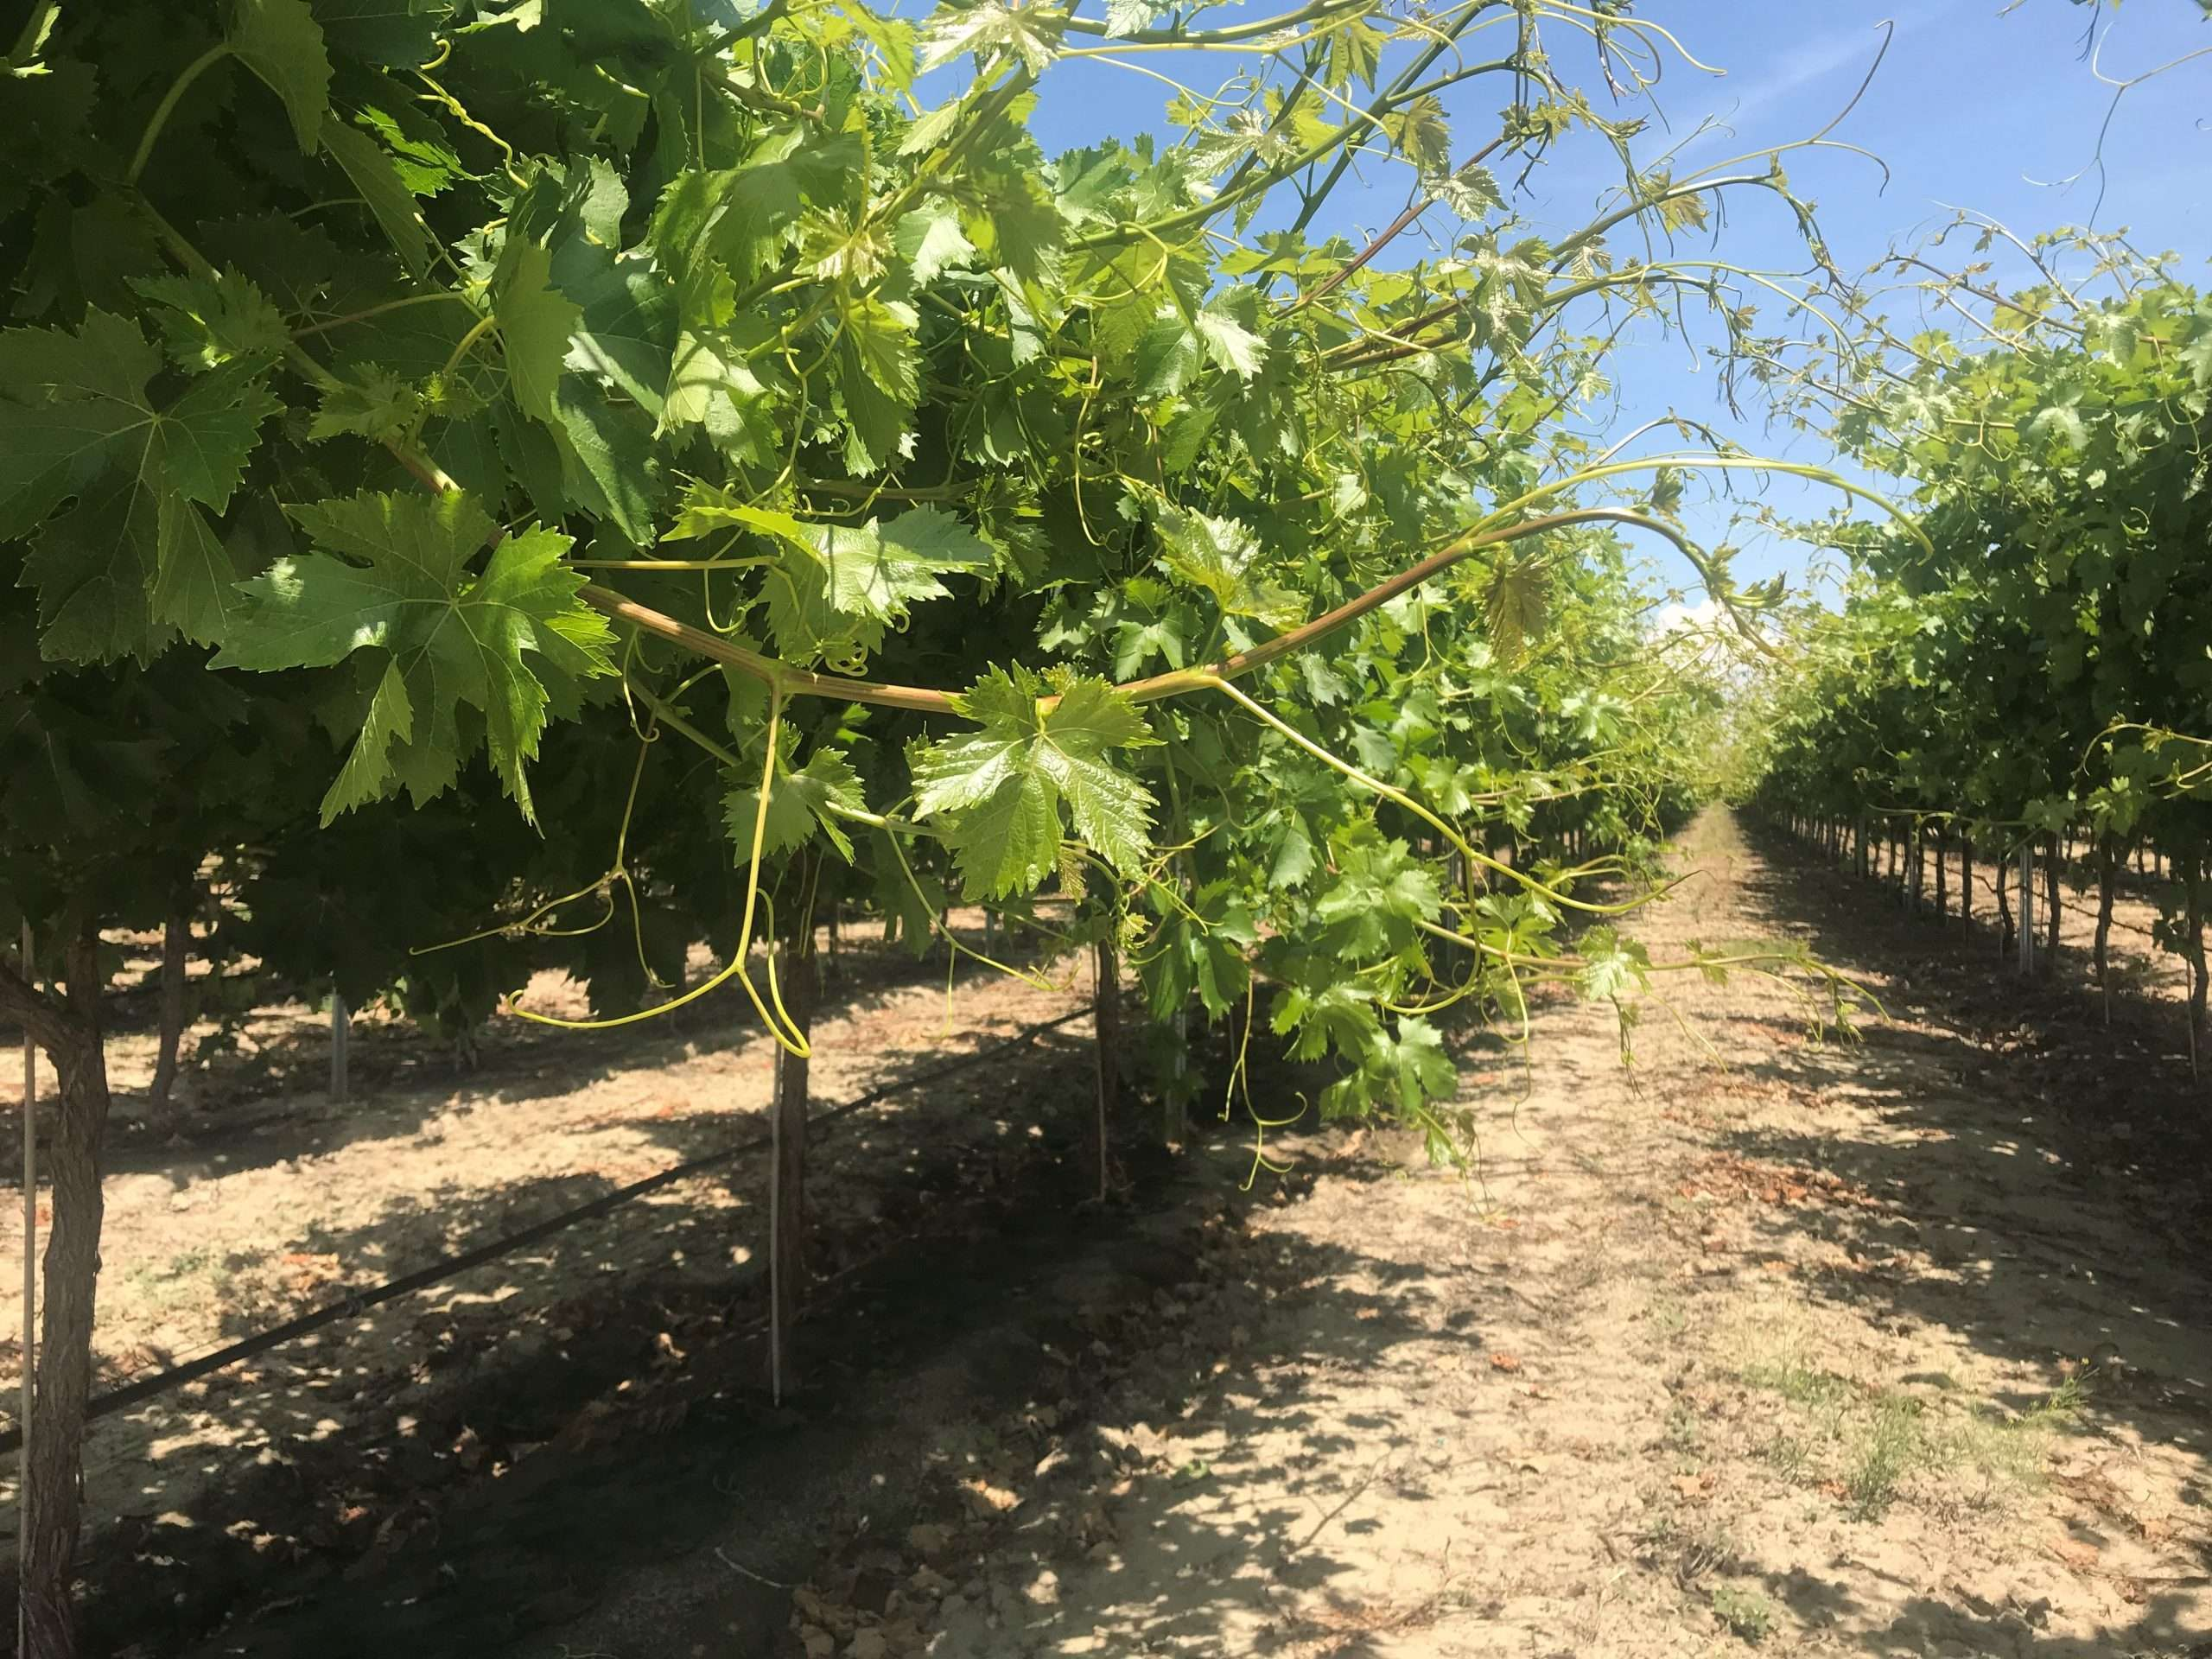 310.9 Ac. Vineyards, McFarland